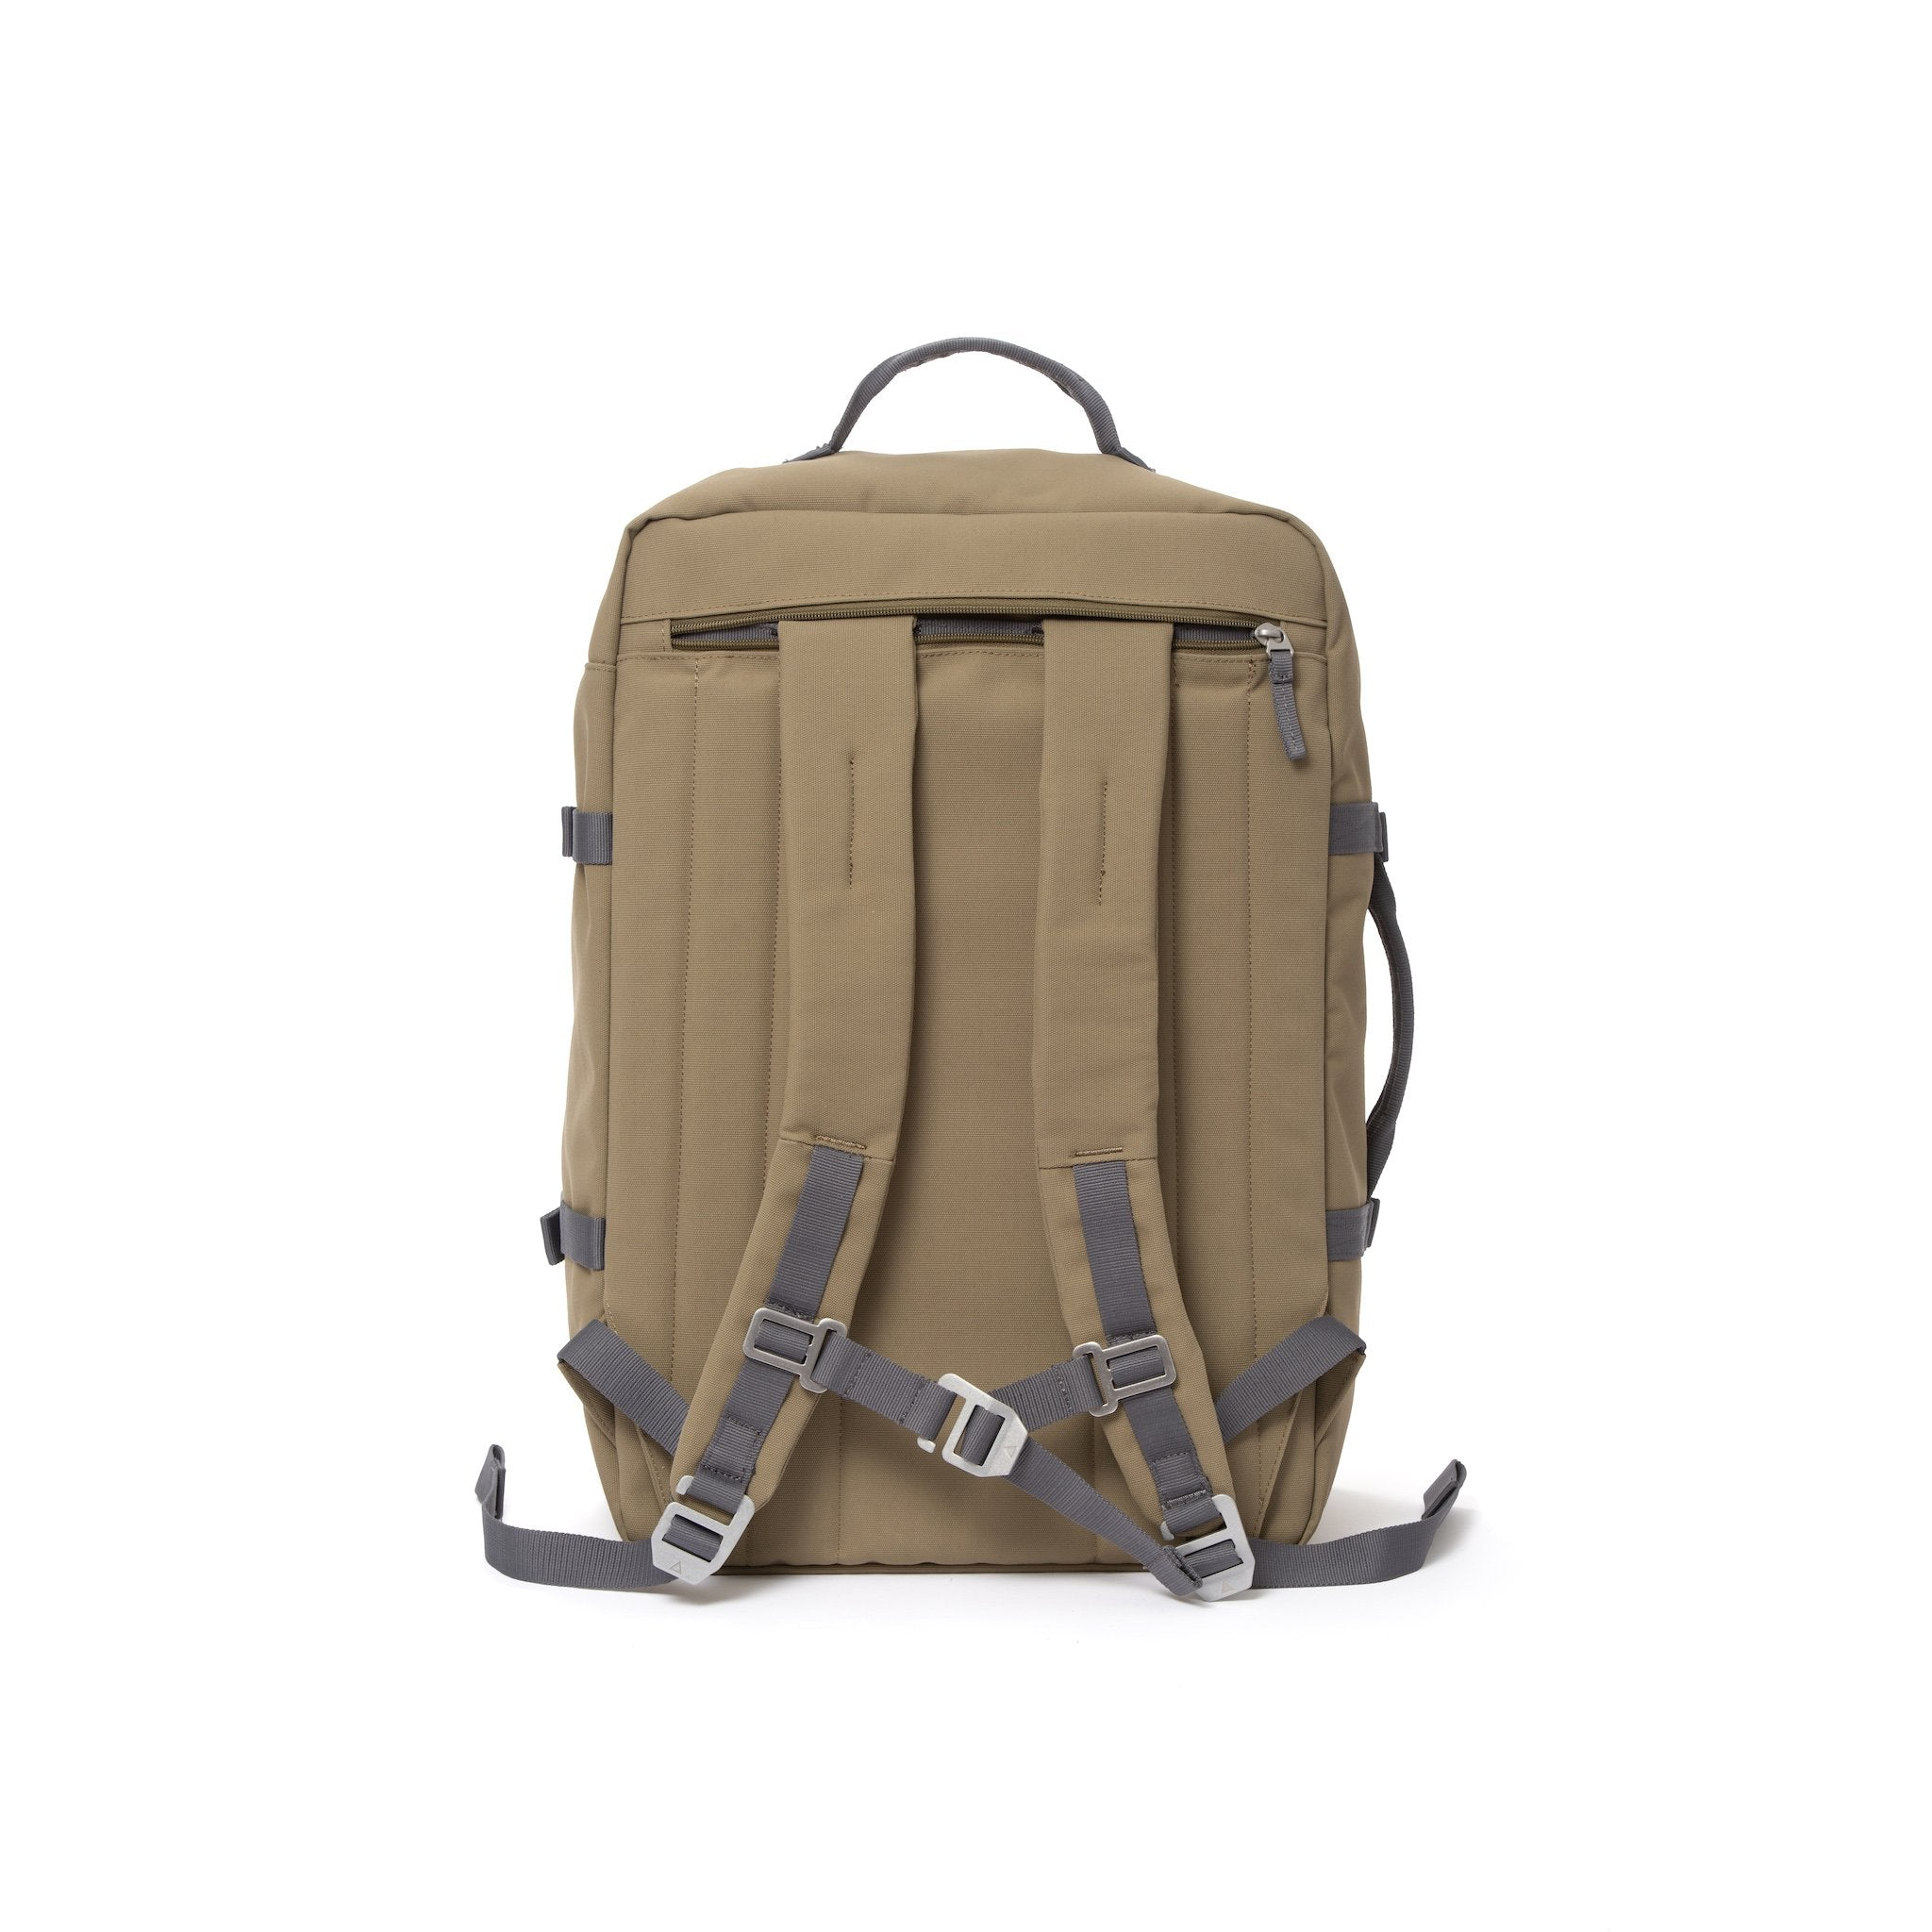 Khaki travel backpack with padded shoulder straps.